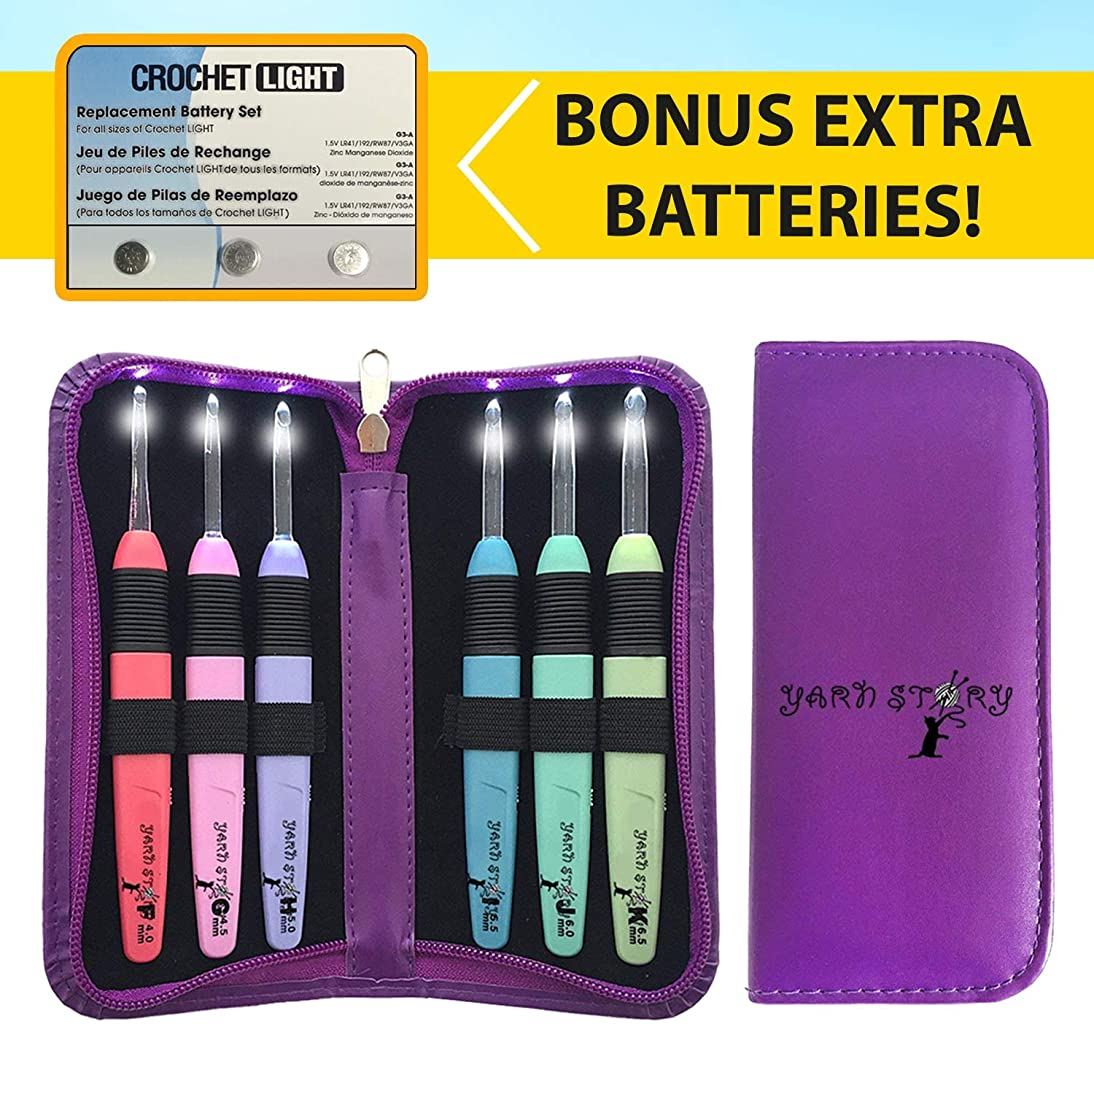 Lighted Crochet Hooks and Case with Replacement Batteries - LED Lite Hooks - Ergonomic Grip Handles & Organizer. Color Coded Illuminated 6 Hooks for Arthritic Hands - Size 4mm To 6,5mm (PURPLE)